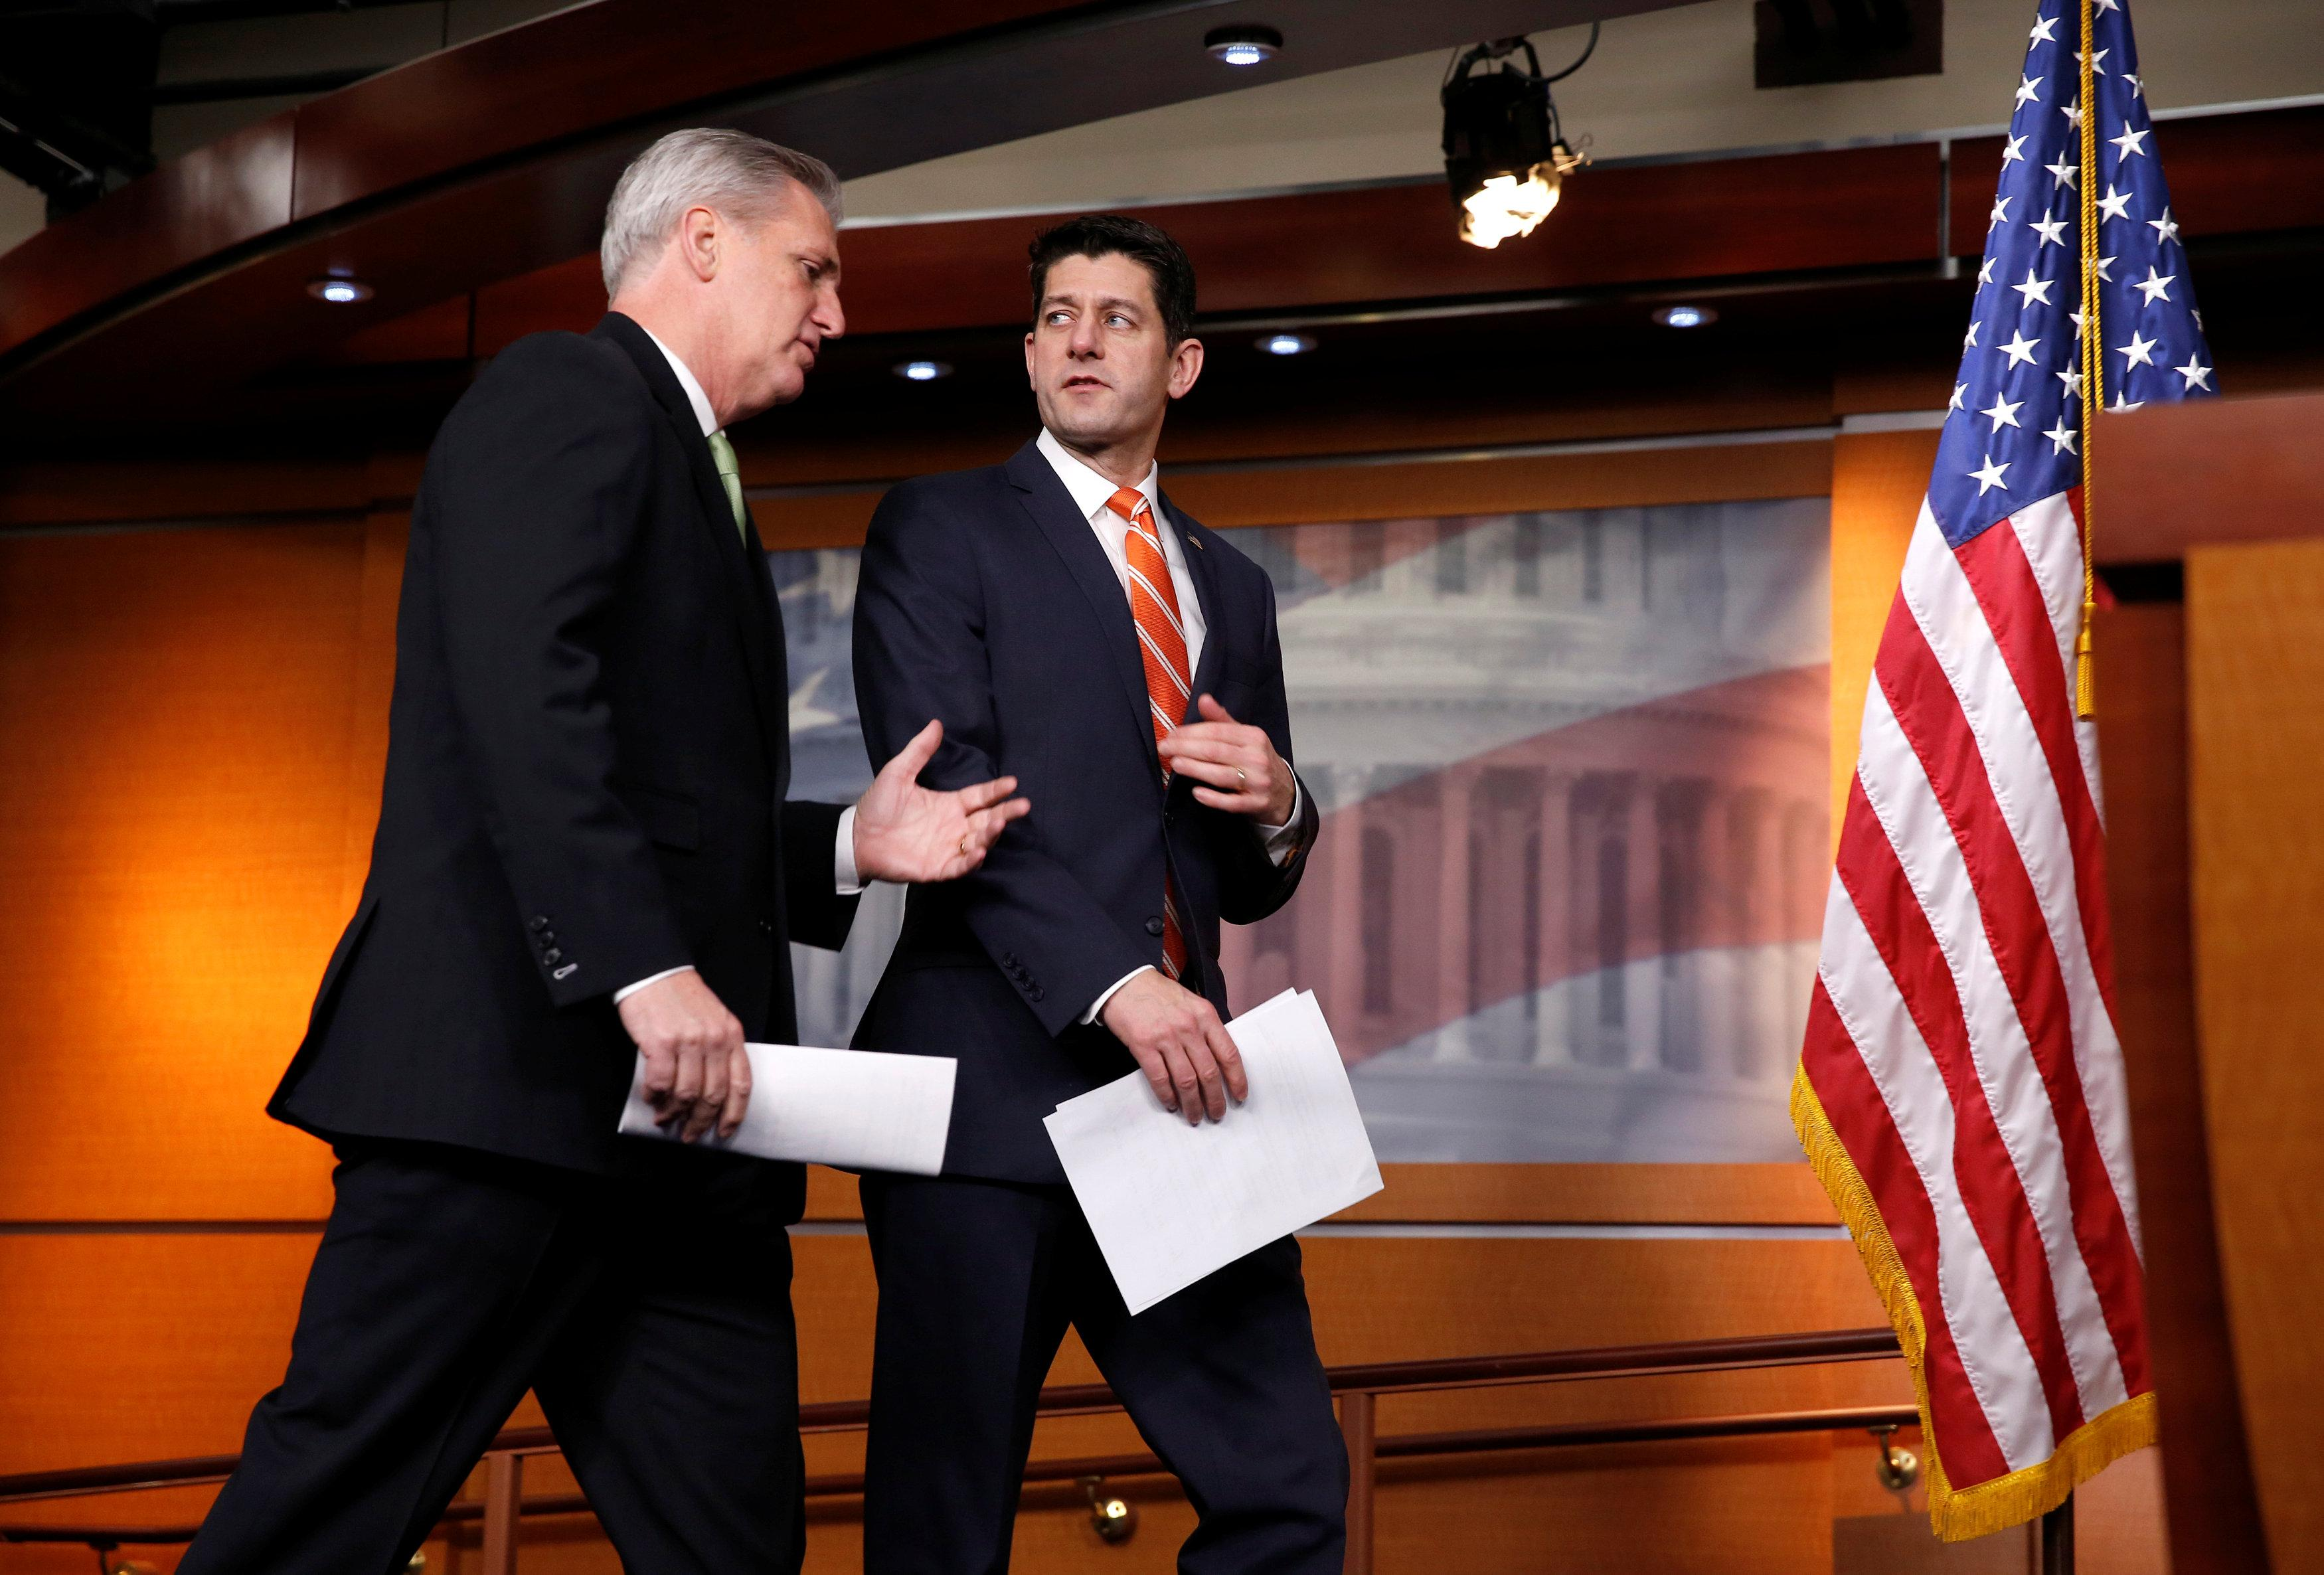 Speaker of the House Paul Ryan (R-WI) walk with House Majority Leader Kevin McCarthy (R-CA) during a news conference after a House Republican caucus meeting on Capitol Hill in Washington, U.S., January 17, 2018.      Joshua Roberts